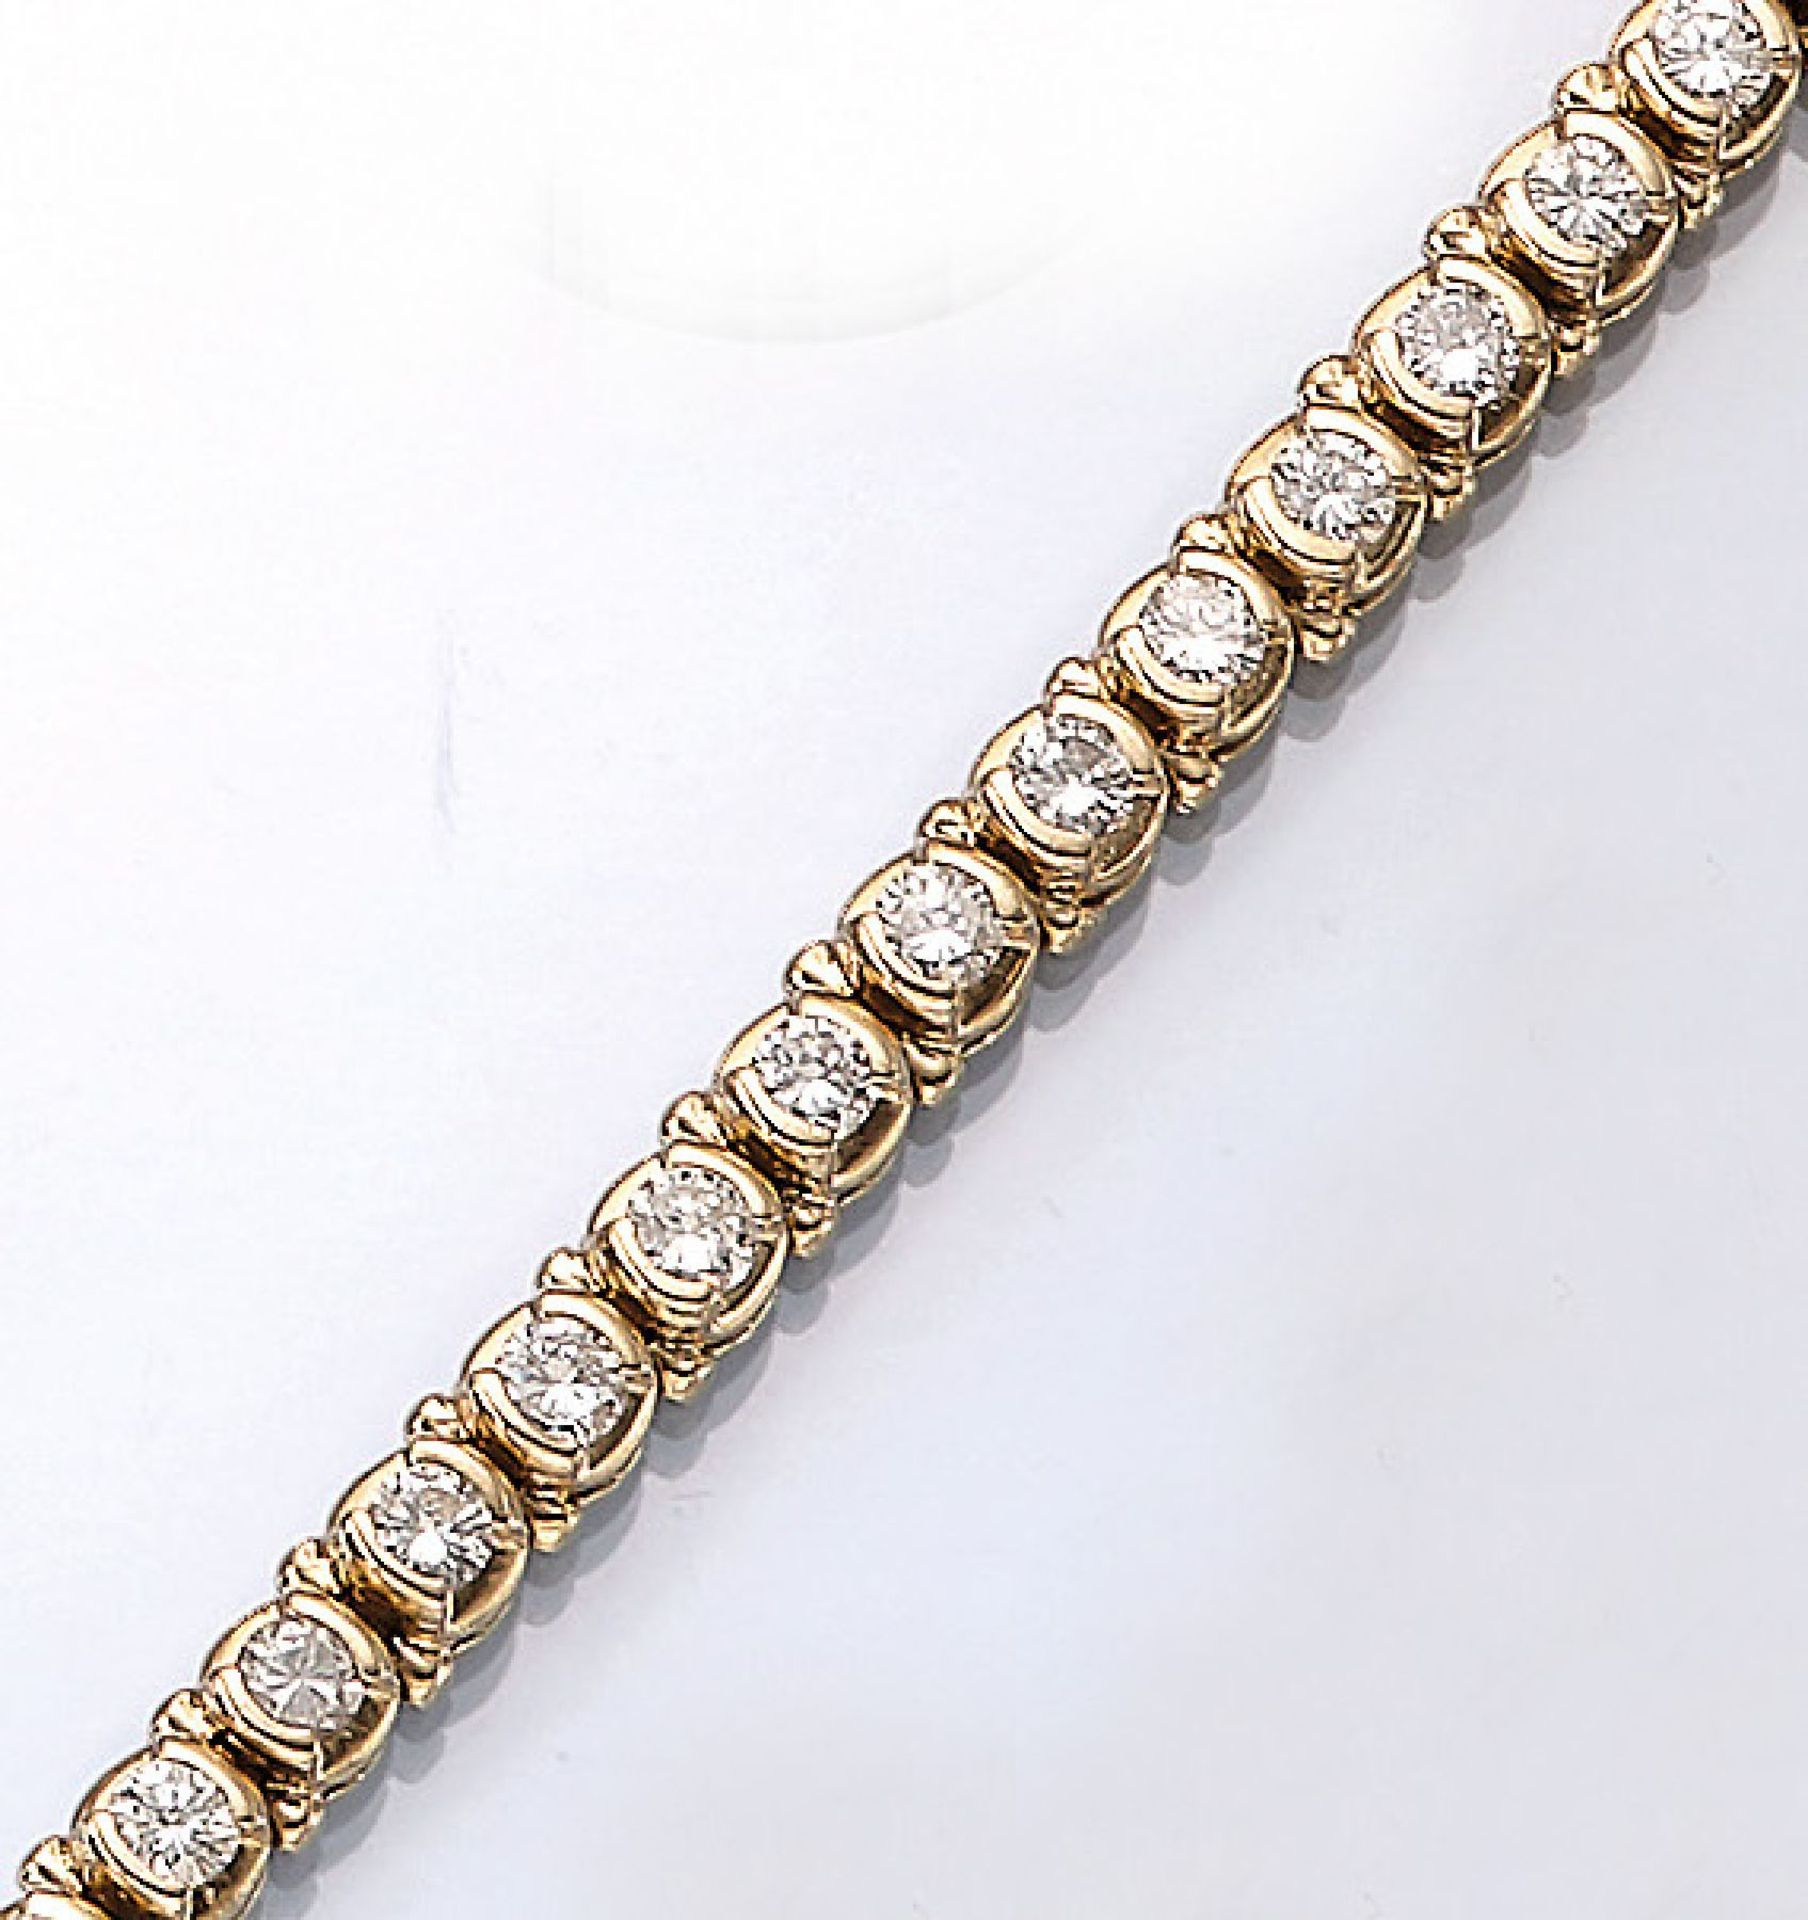 Los 61510 - 14 kt gold bracelet with brilliants , YG 585/000, brilliants total approx. 6.00 ct Wesselton/si-p,